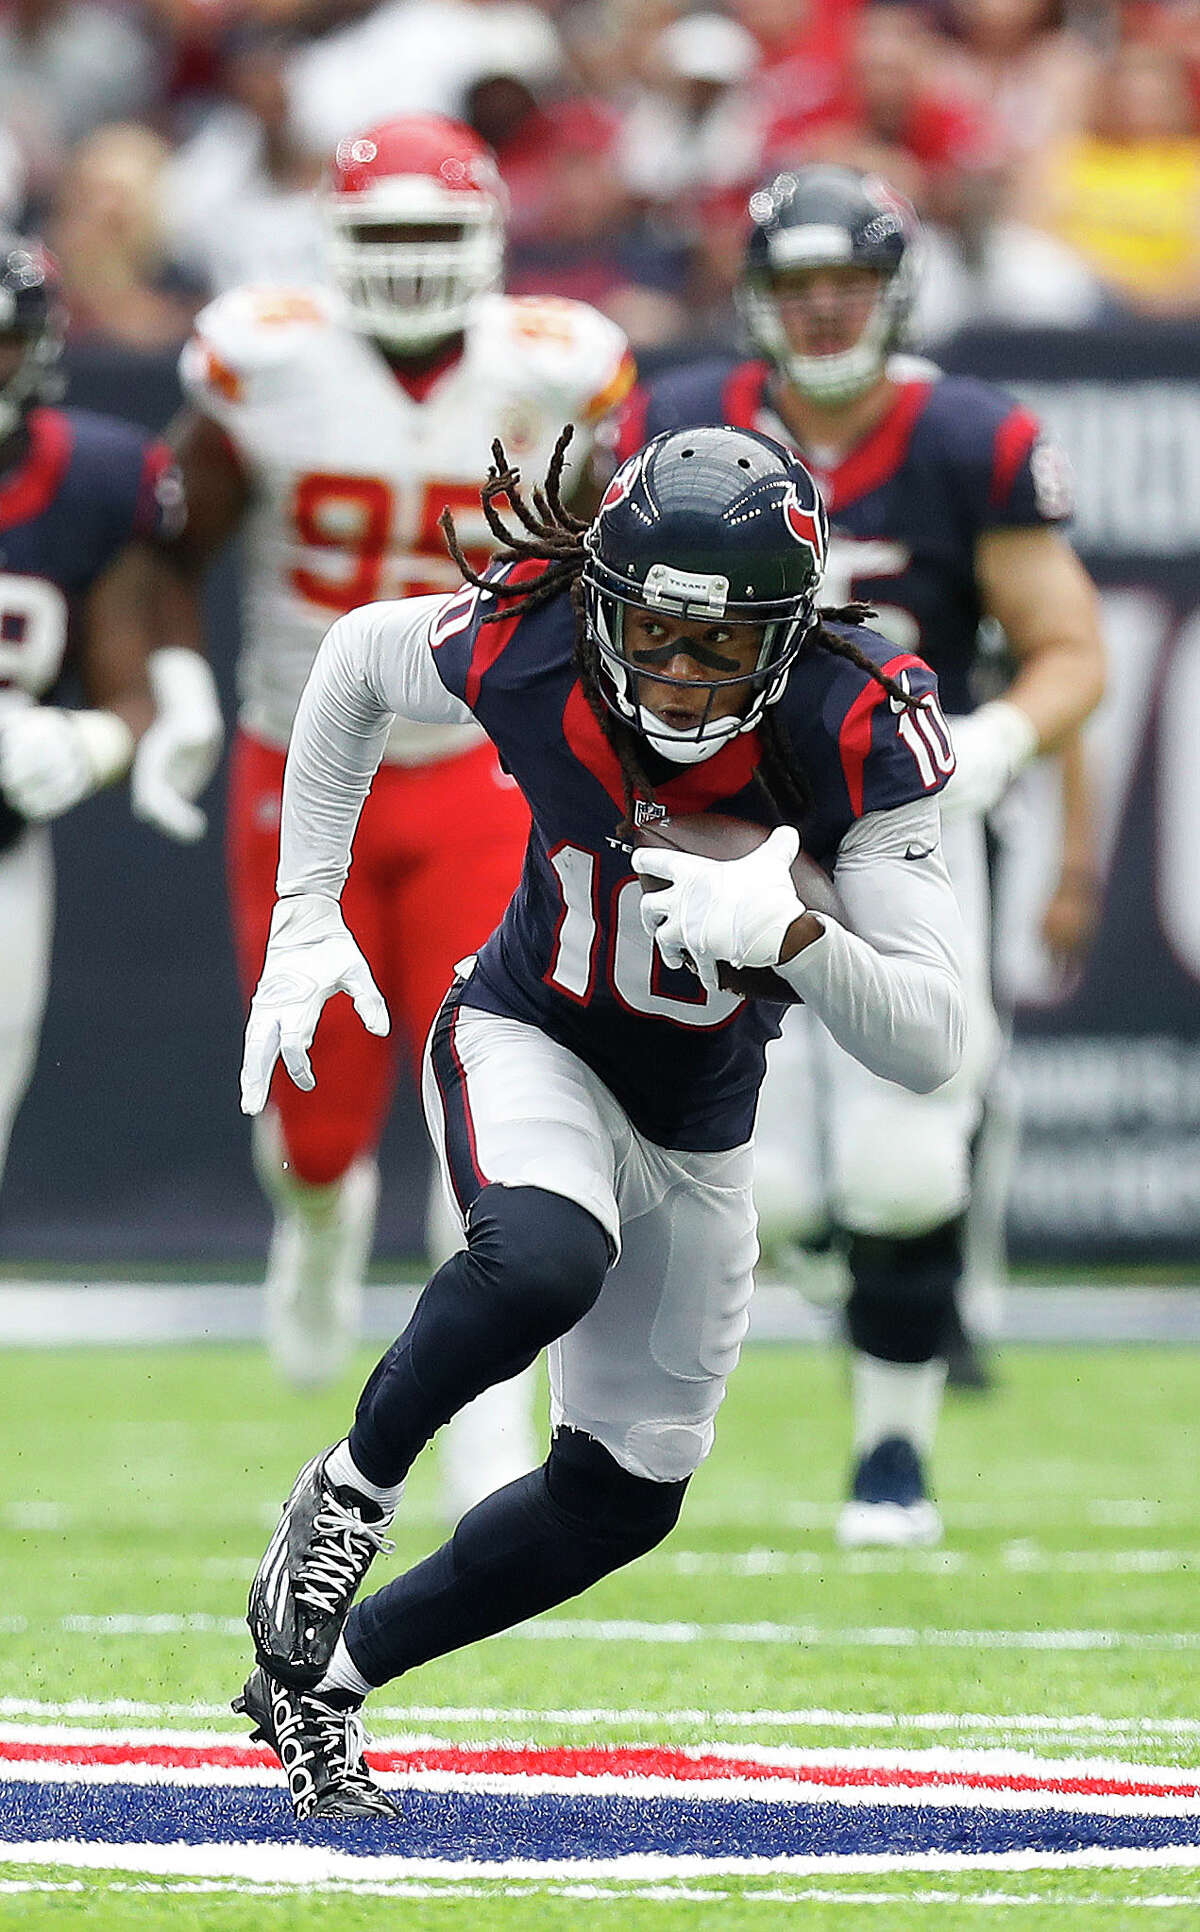 The Texans hope to work out a contract extension with DeAndre Hopkins.